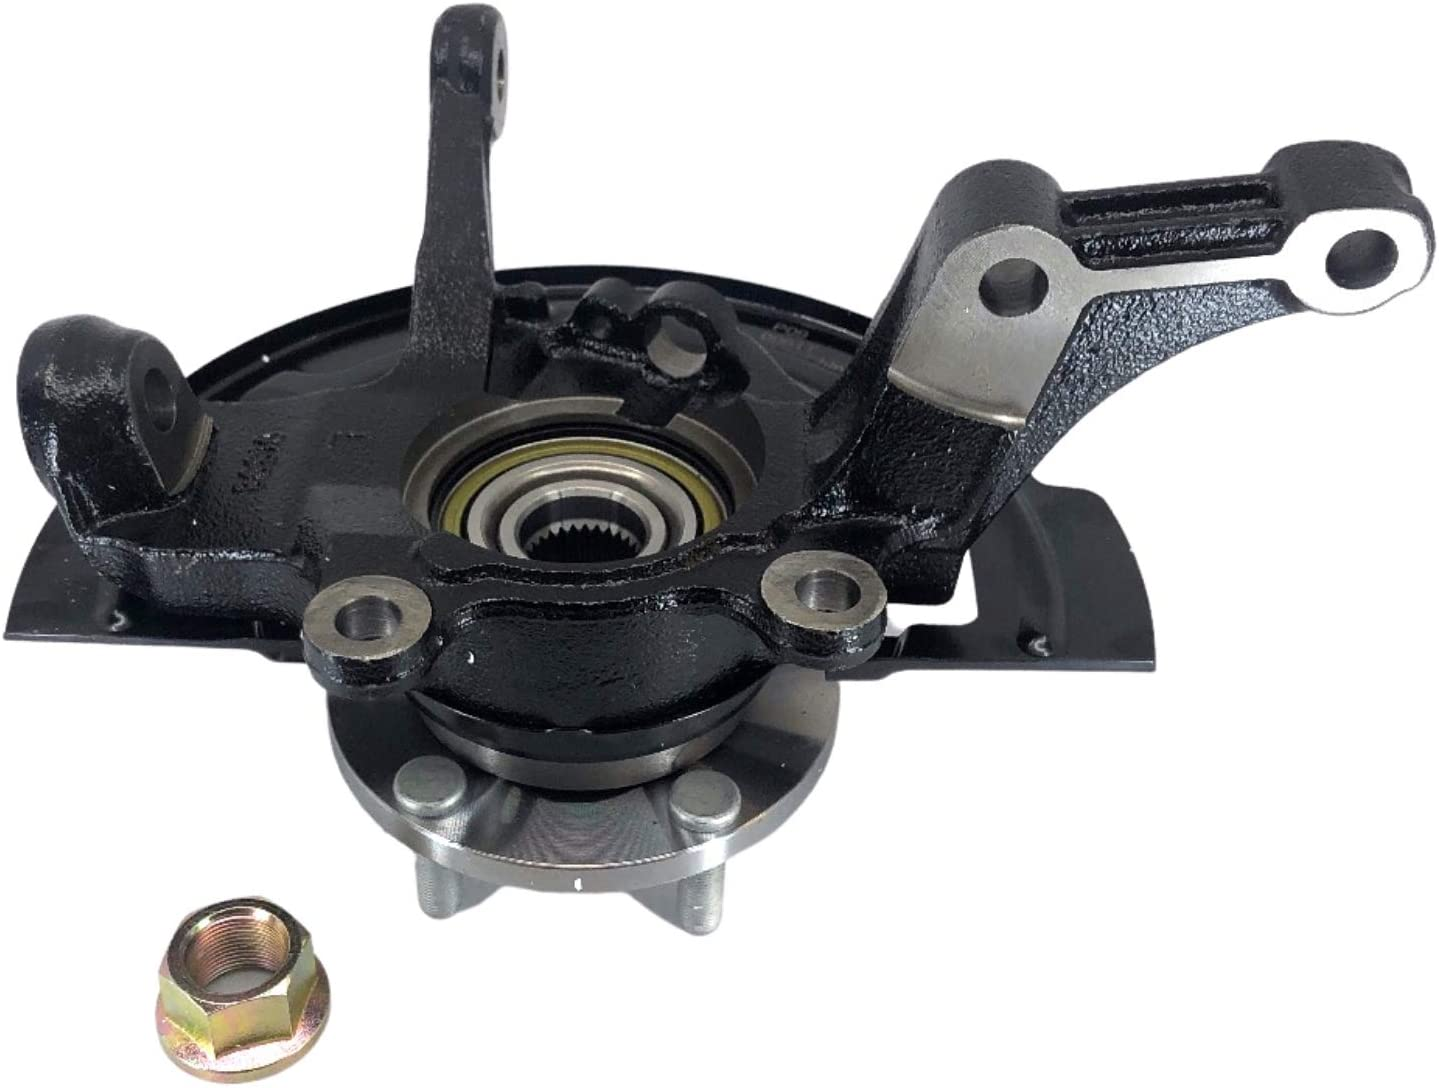 Doc's Loaded Steering Knuckle Front fits Passenger New products world's El Paso Mall highest quality popular Side 2002-200